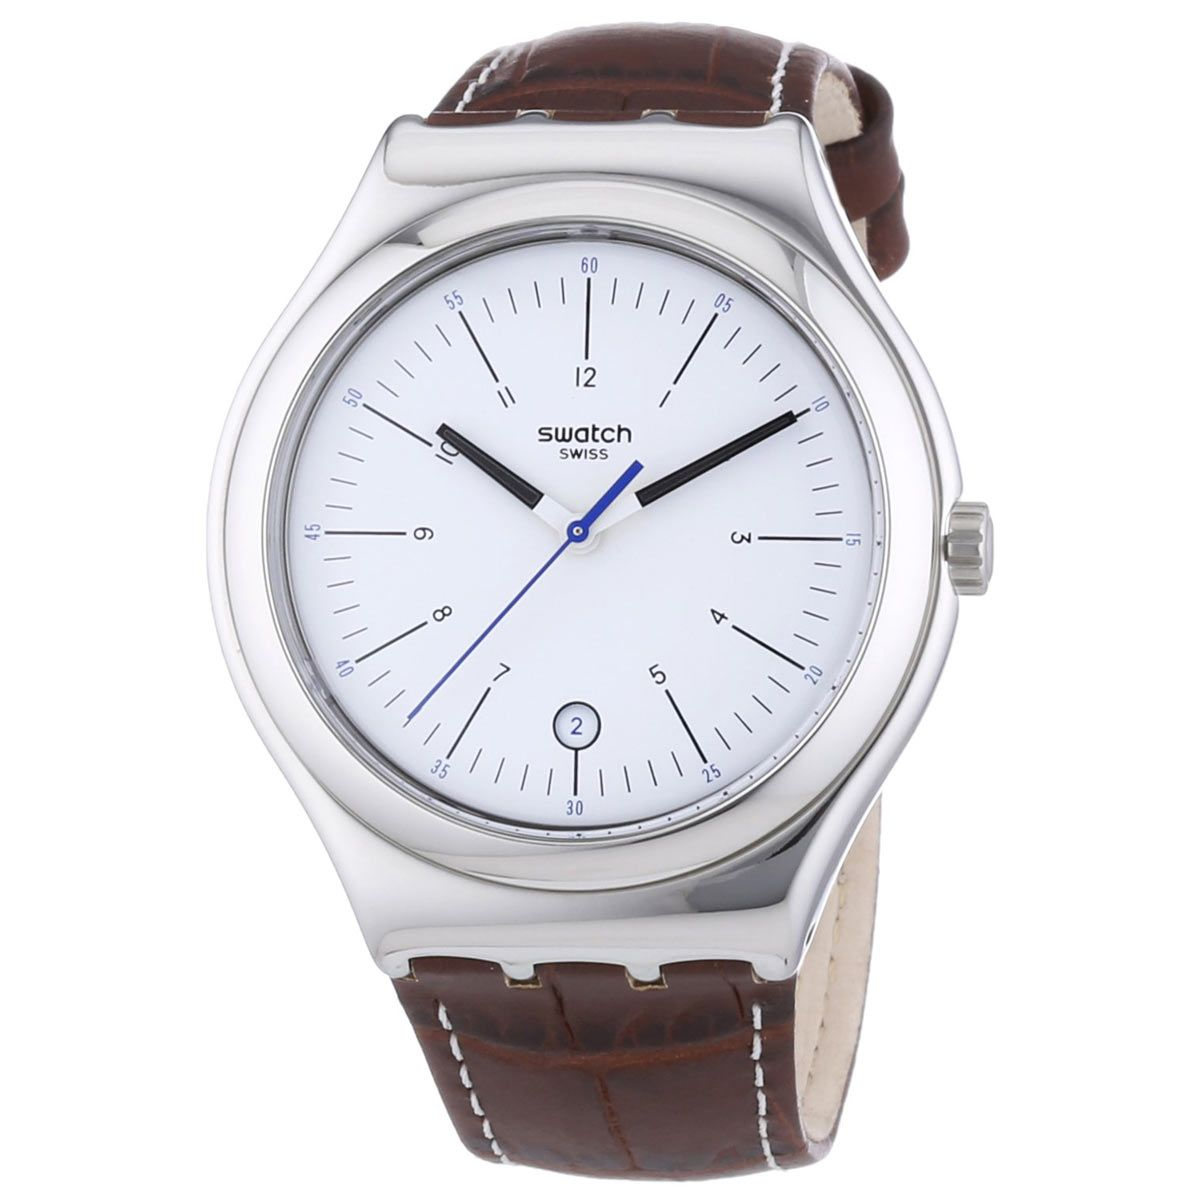 swatch yws401 gent s silver dial brown leather strap swiss watch swatch yws401 gent s silver dial brown leather strap swiss watch swatch swatchyws401